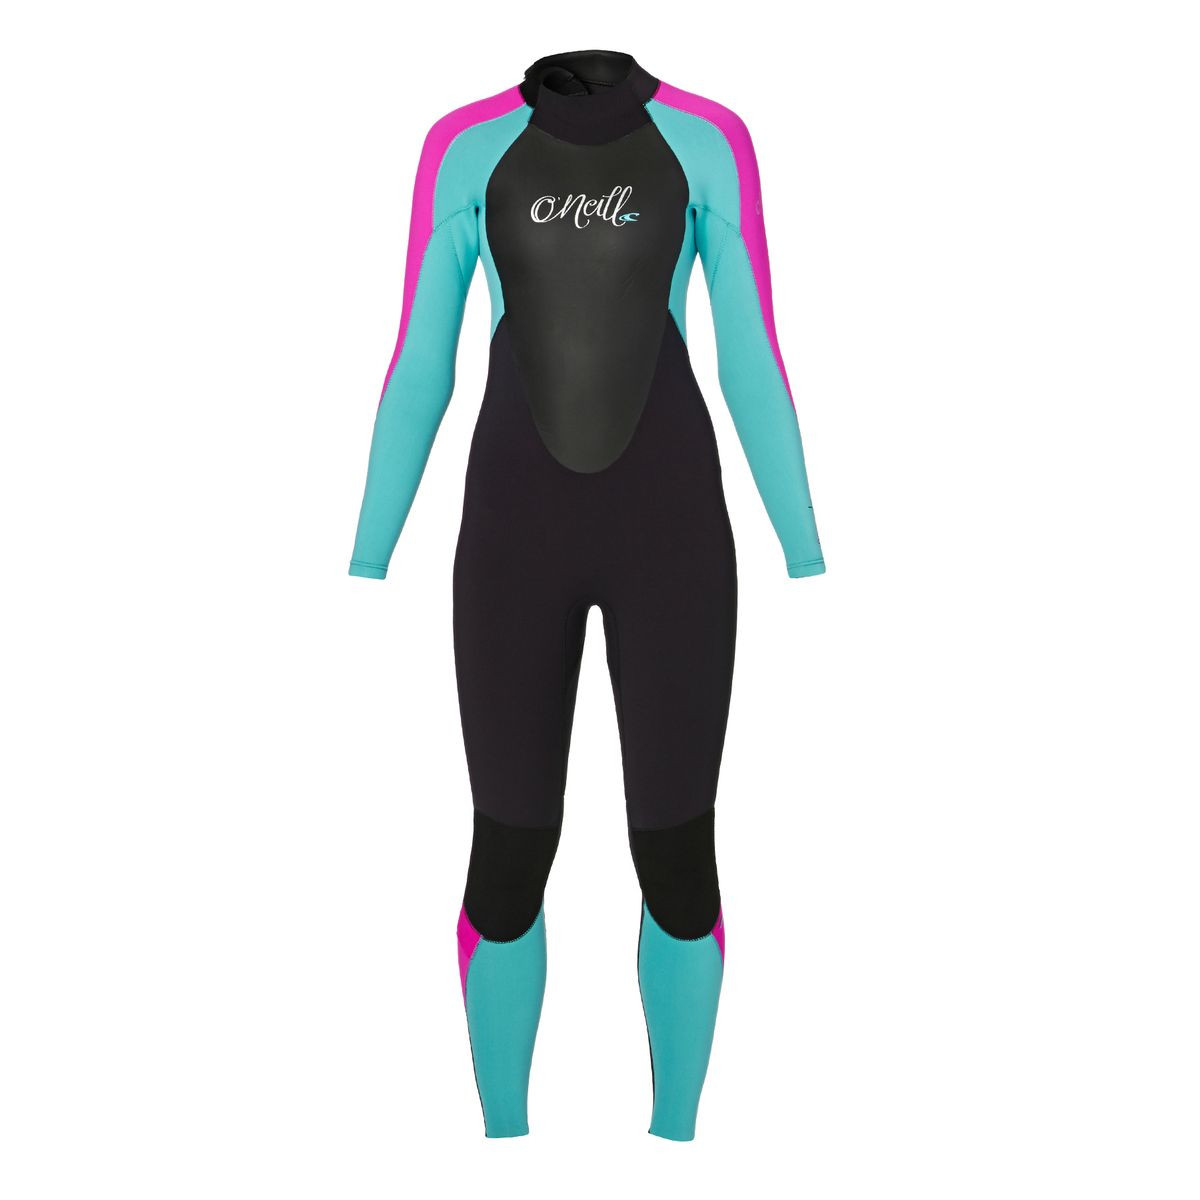 O'Neill Womens Epic 4/3mm 2017 Back Zip Wetsuit - Black/ Light Aqua/ Berry